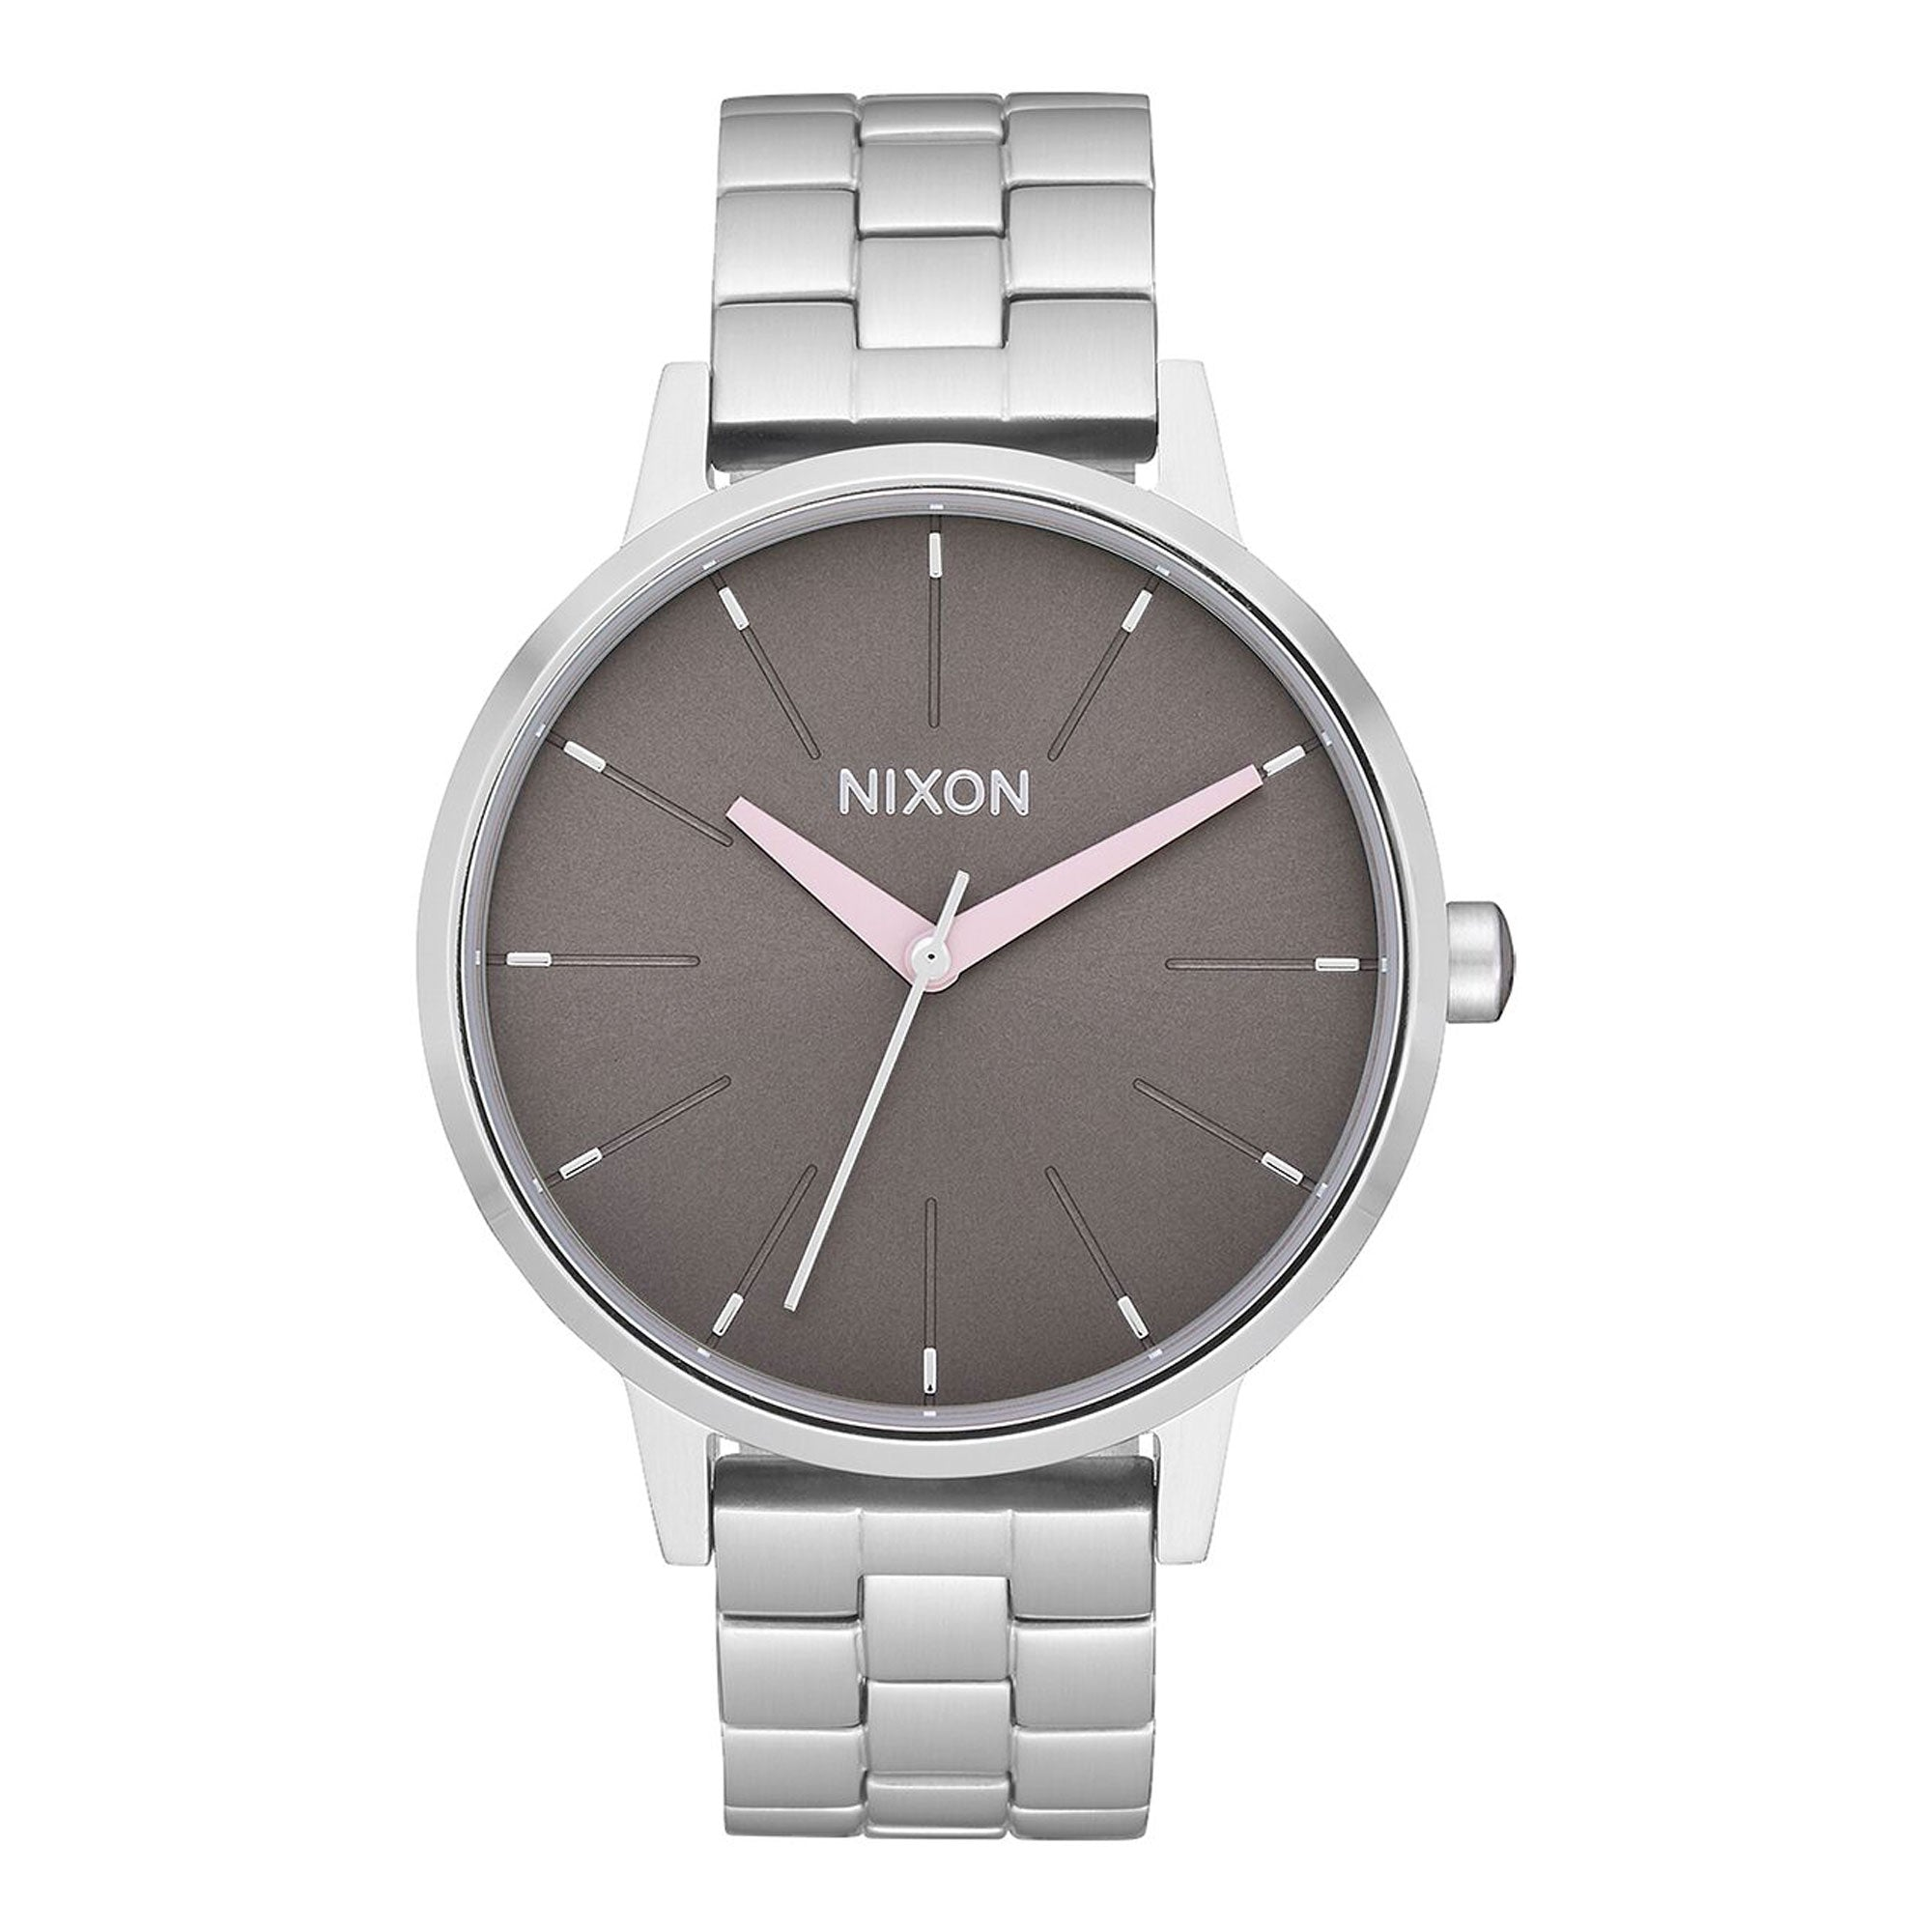 Nixon Kensington Women's Watch - Silver/Grey/Pink